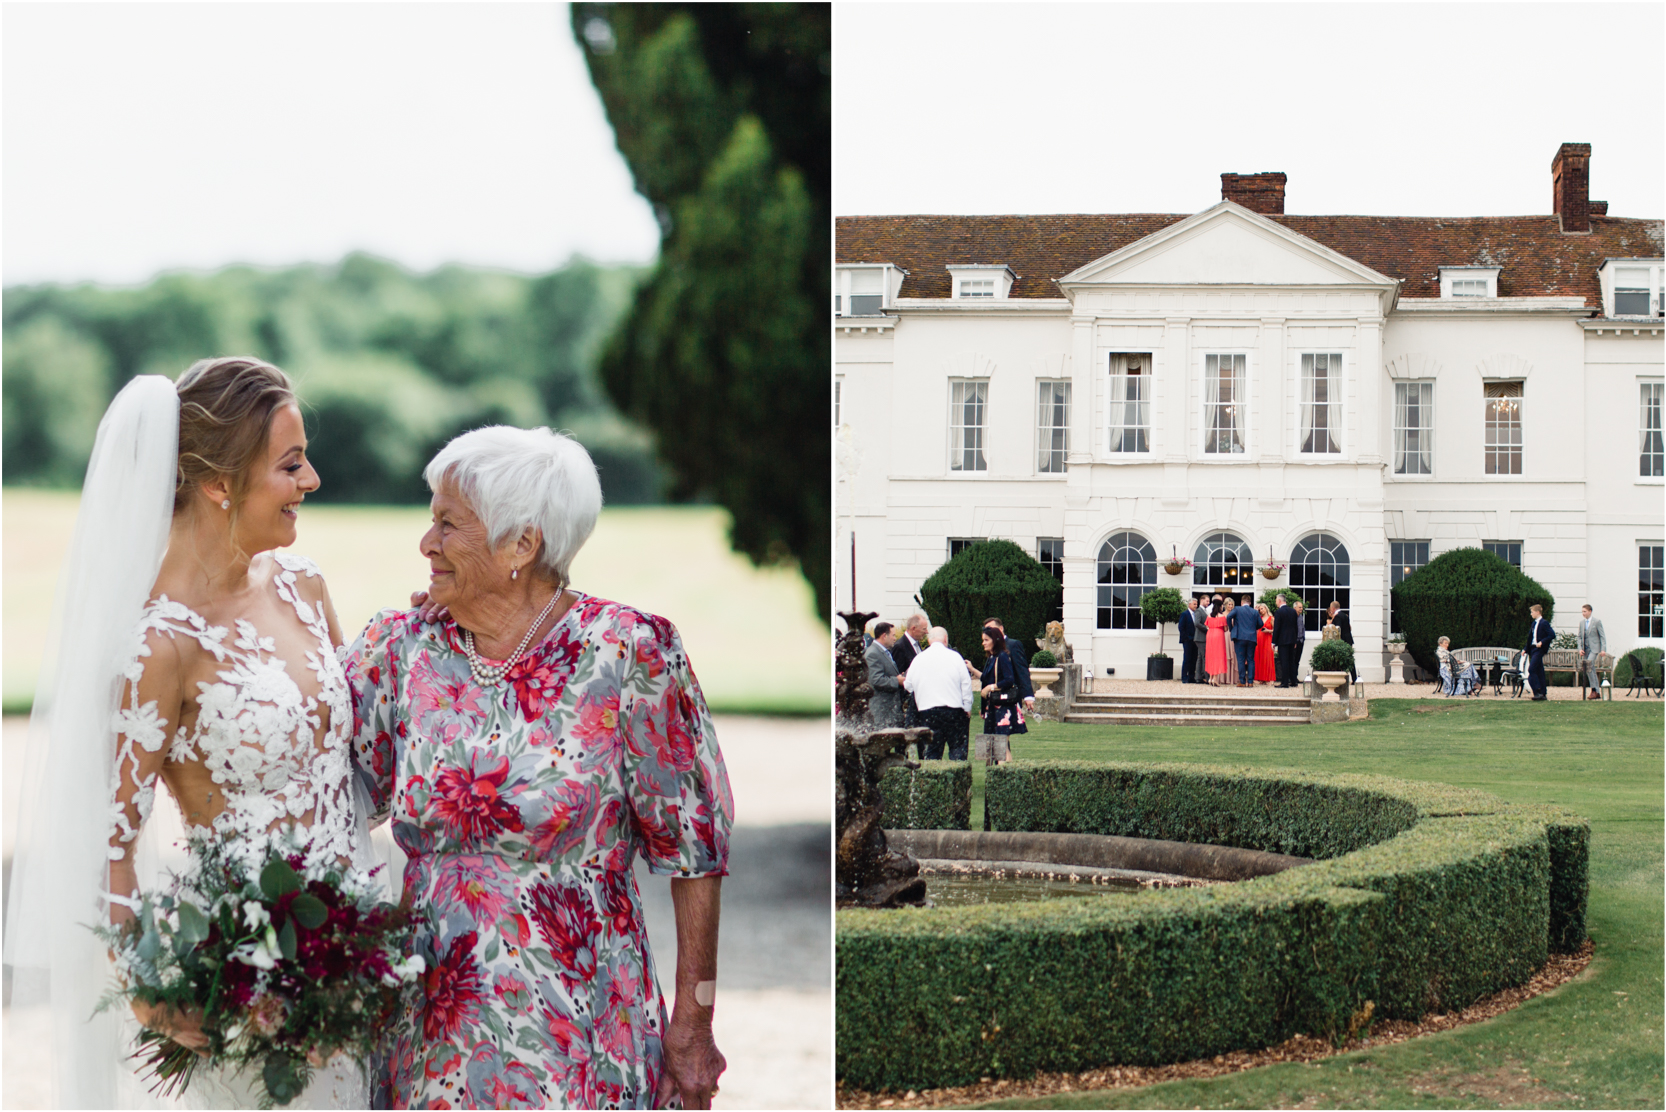 Gosfield Hall Wedding Photography Surrey Luxury Photographer 1 2.jpg